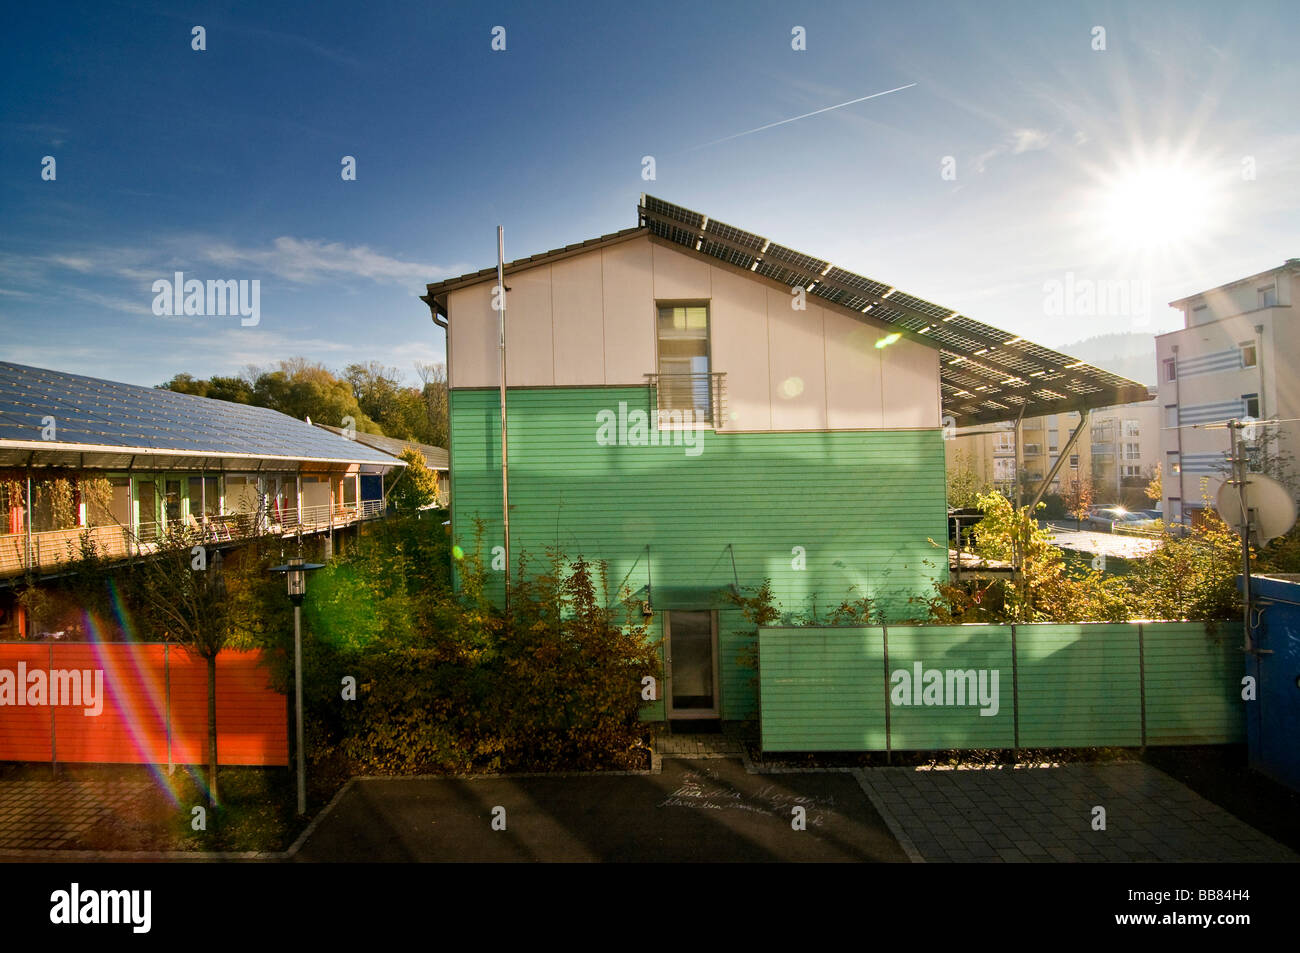 Passive houses with photovoltaic systems on their roofs, Vauban district, Freiburg im Breisgau, Baden-Wuerttemberg, - Stock Image